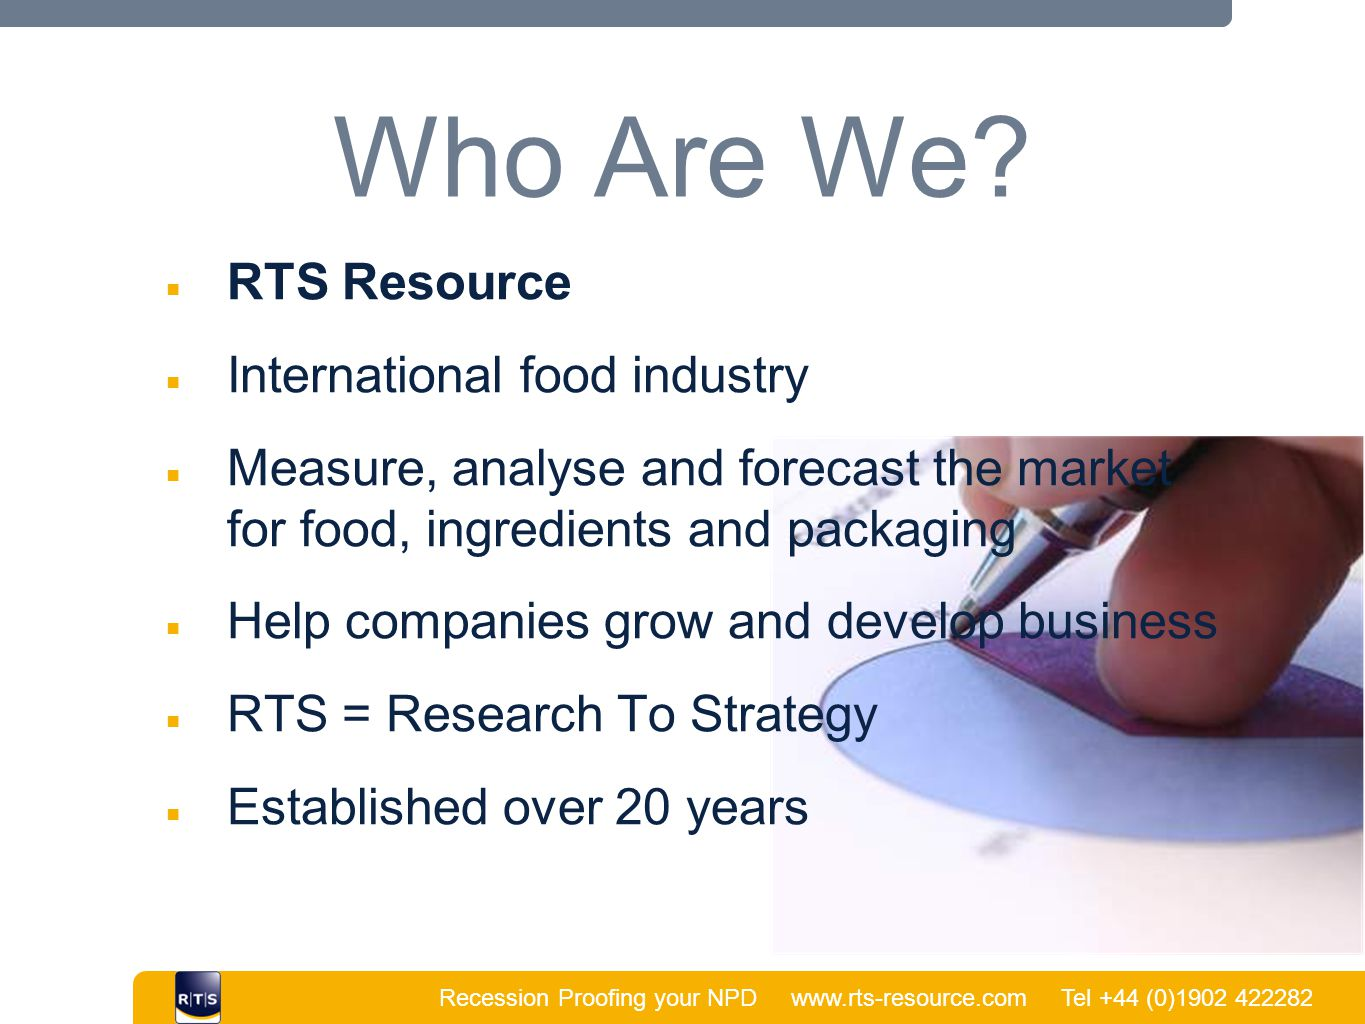 Recession Proofing your NPD www.rts-resource.com Tel +44 (0)1902 422282 | Who Are We.